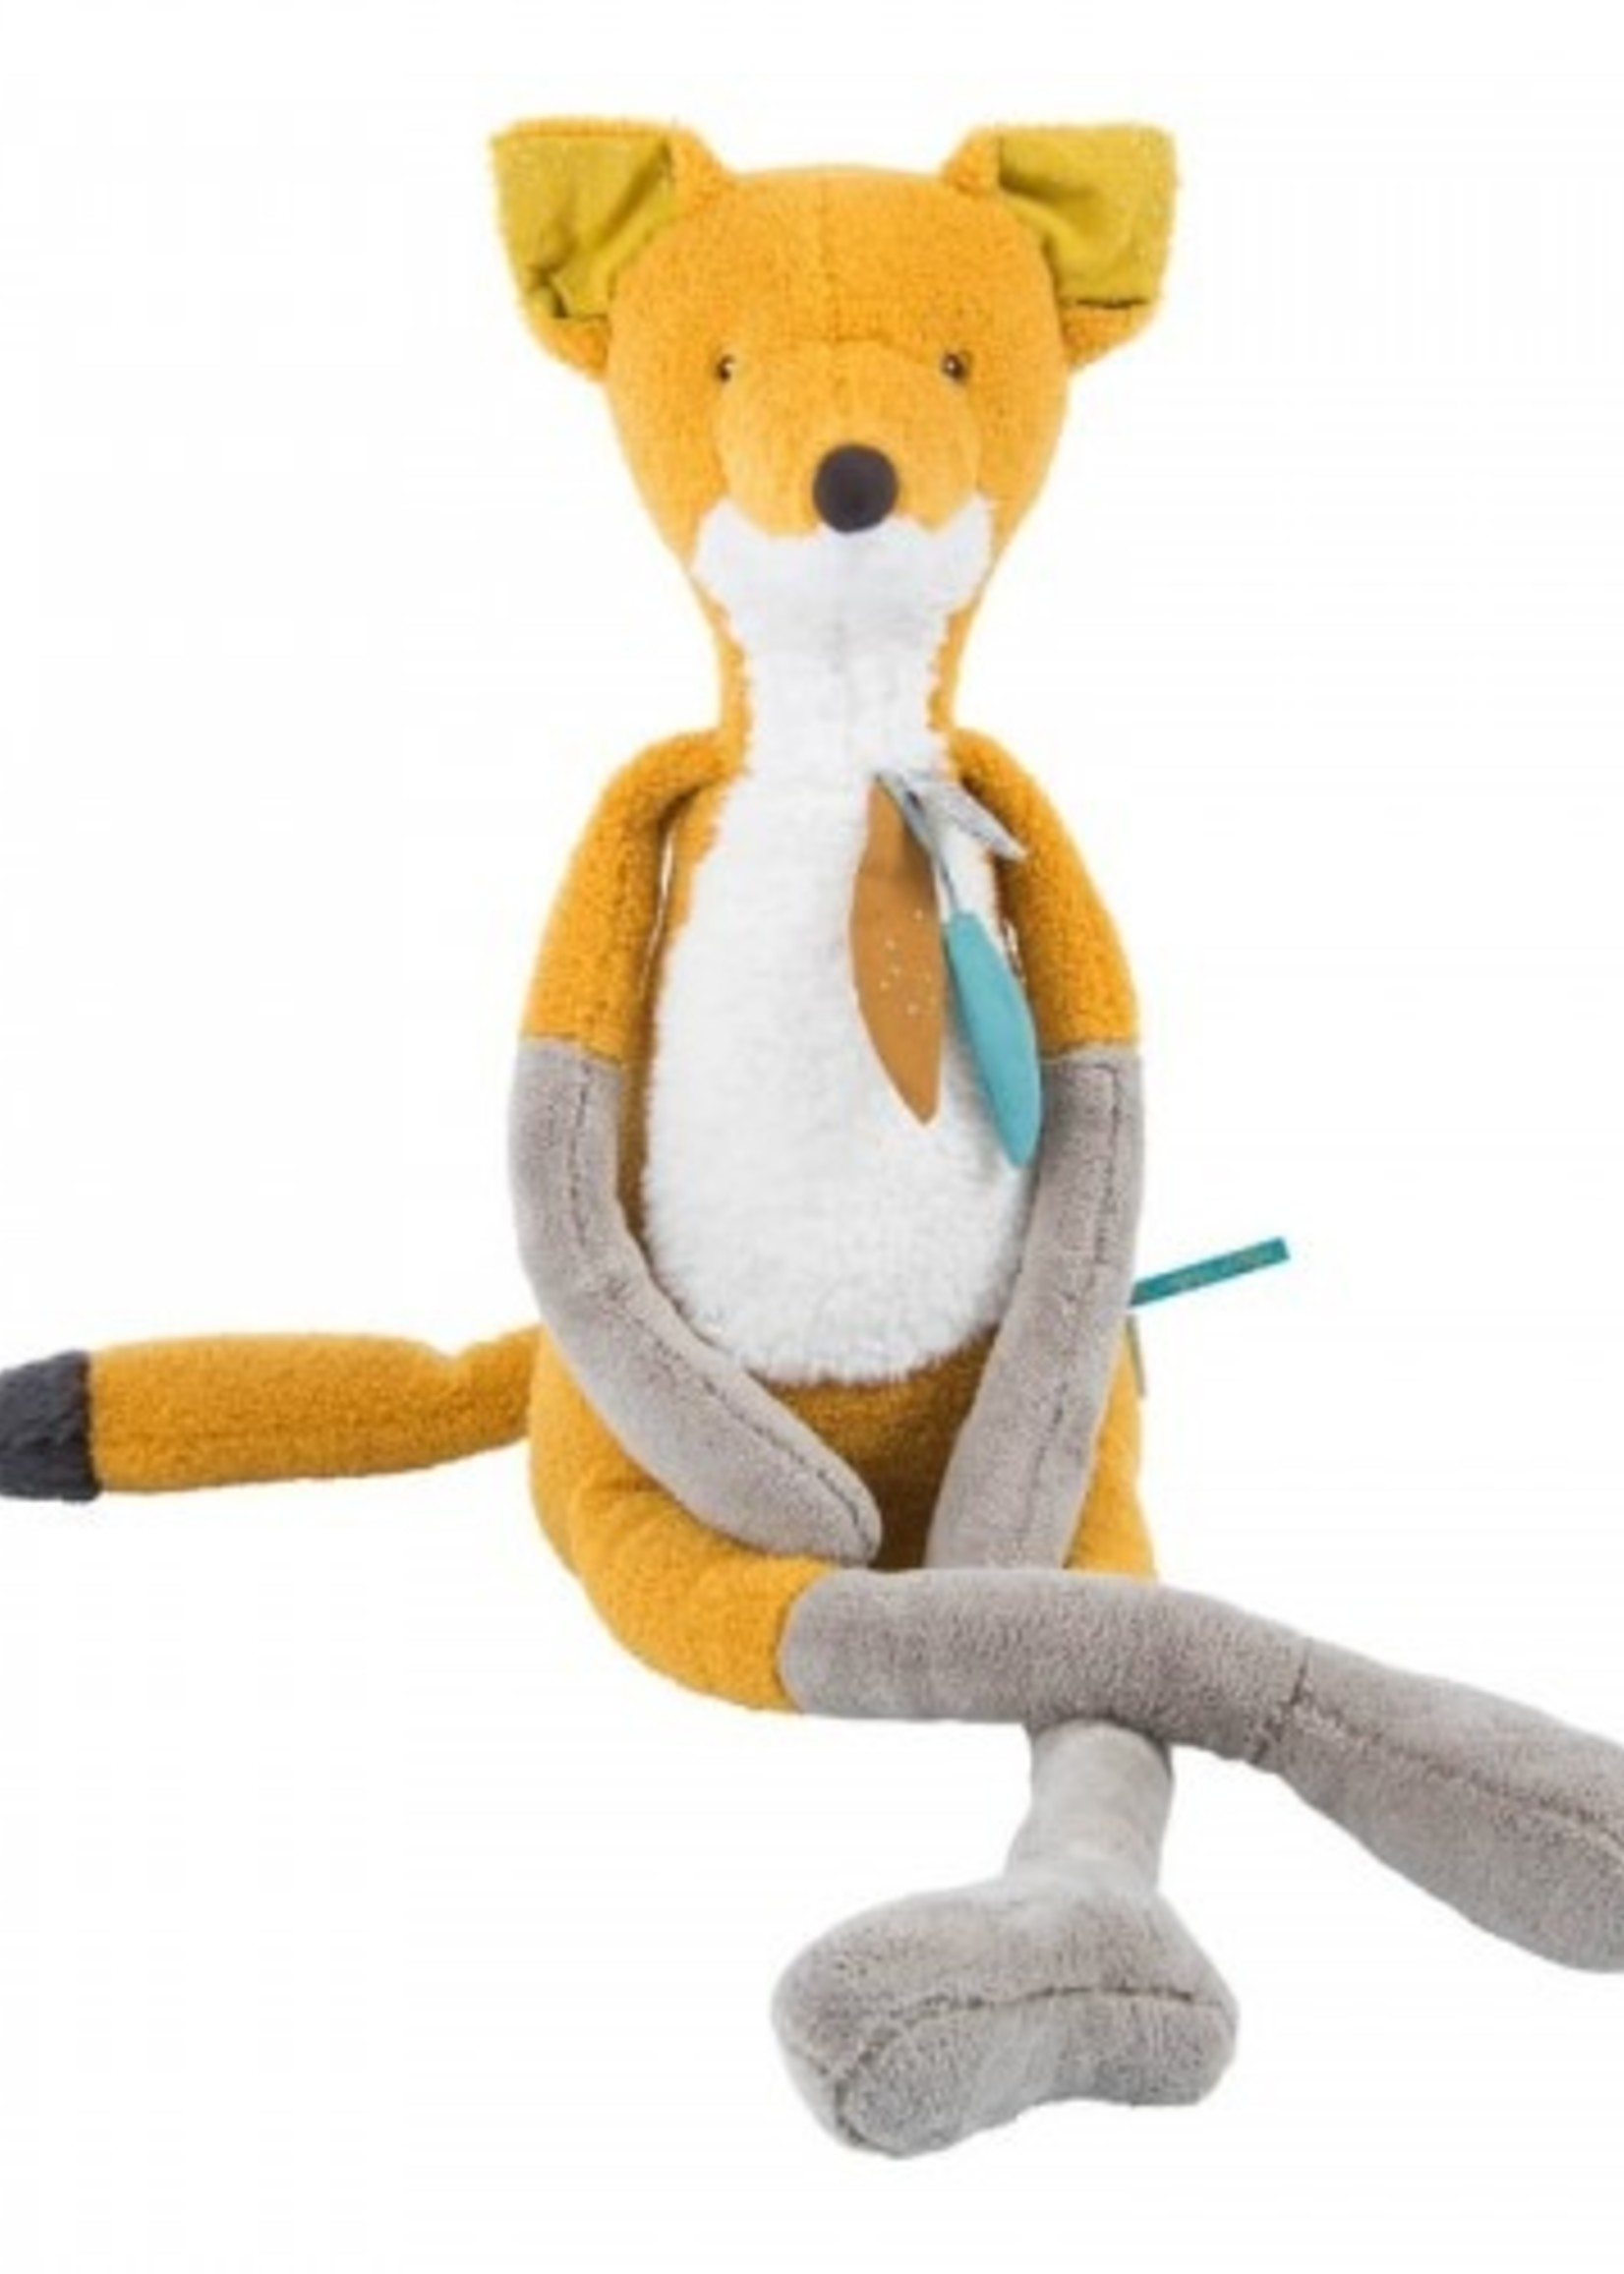 Voyage D'Olga - giant Chaussette fox (96cm) - Moulin Roty